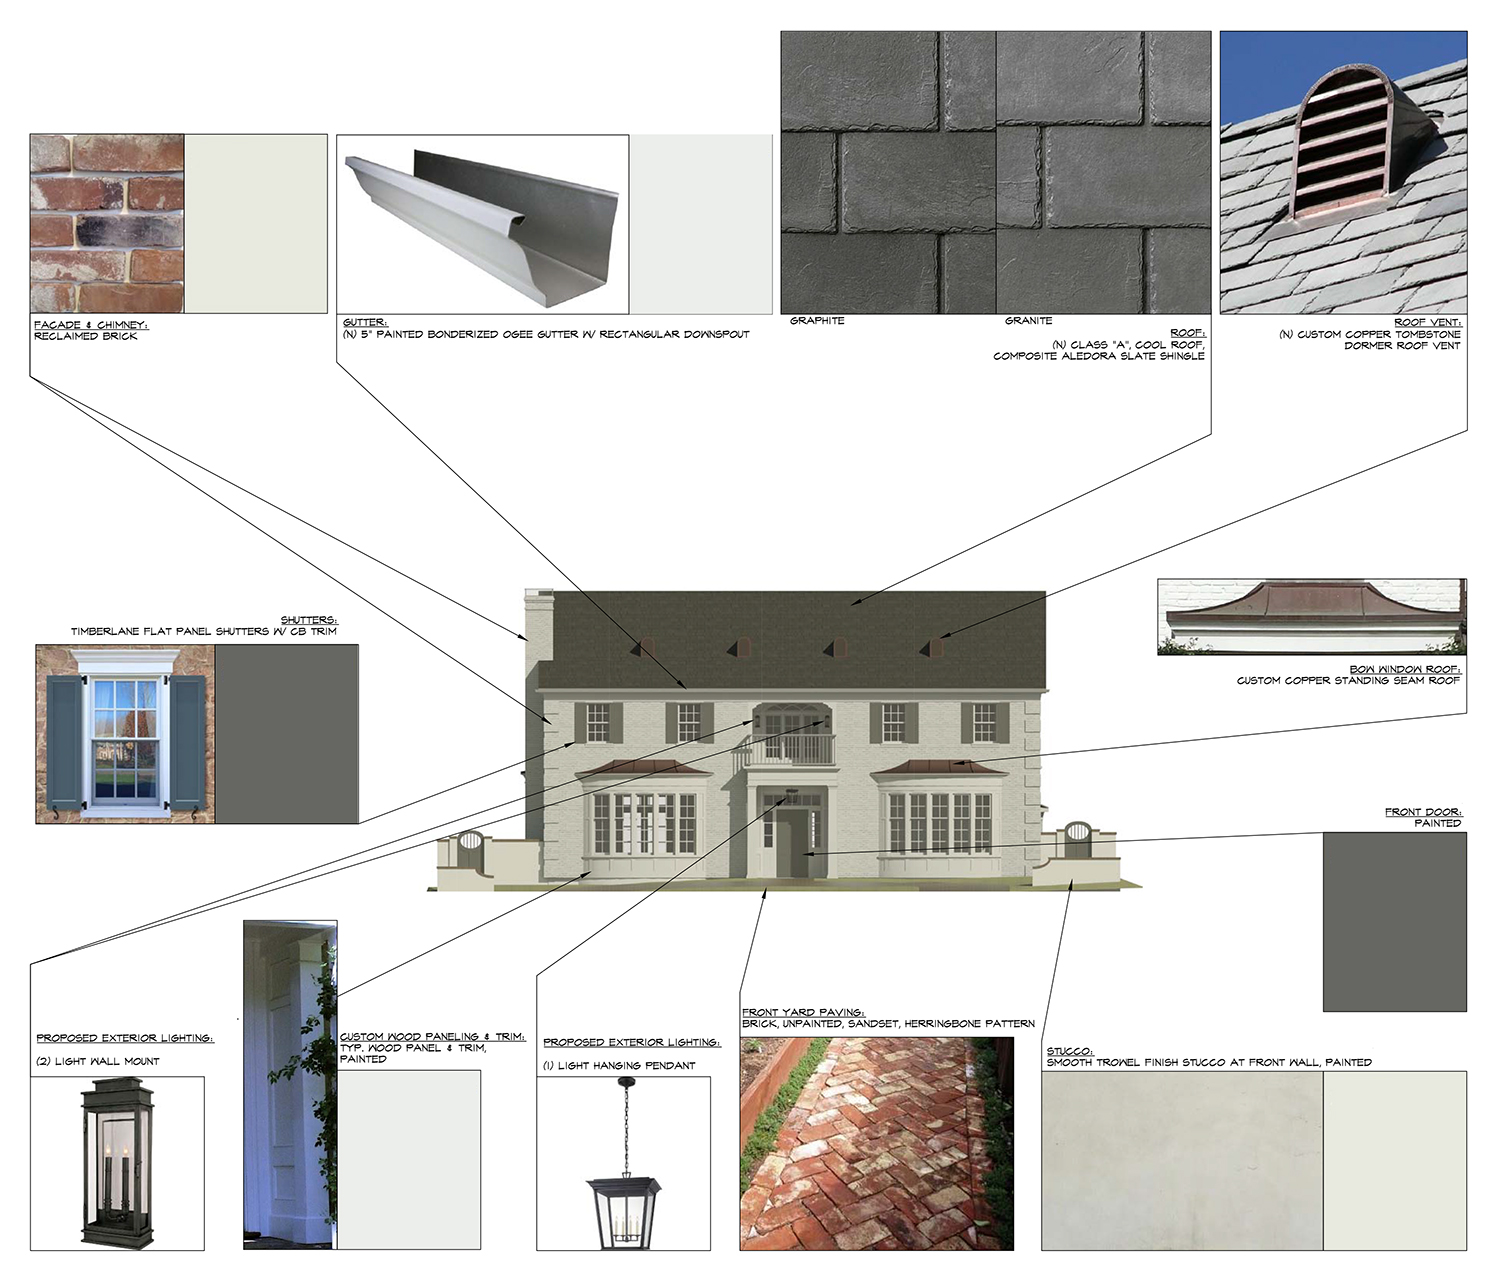 """While the Revit model we created in the Design Development phase conveys the overall appearance and feeling of the house, Construction Documents detail each of the specific features, finishes, fixtures, materials, and products that guarantee that appearance and feeling. This materials board by project manager  Katie Peterson  (2017) was created for Beverly Hills municipal review. The least glamorous, but most important work we do in the Construction Documents Phase is to get permit approval. In-depth city reviews, coordinating our engineers and collaborators to get every last detail right and signed off is often an intricate, time-consuming responsibility. Having the Construction Documents absolutely complete, accurate and consistent makes it """"all in a day's work""""."""